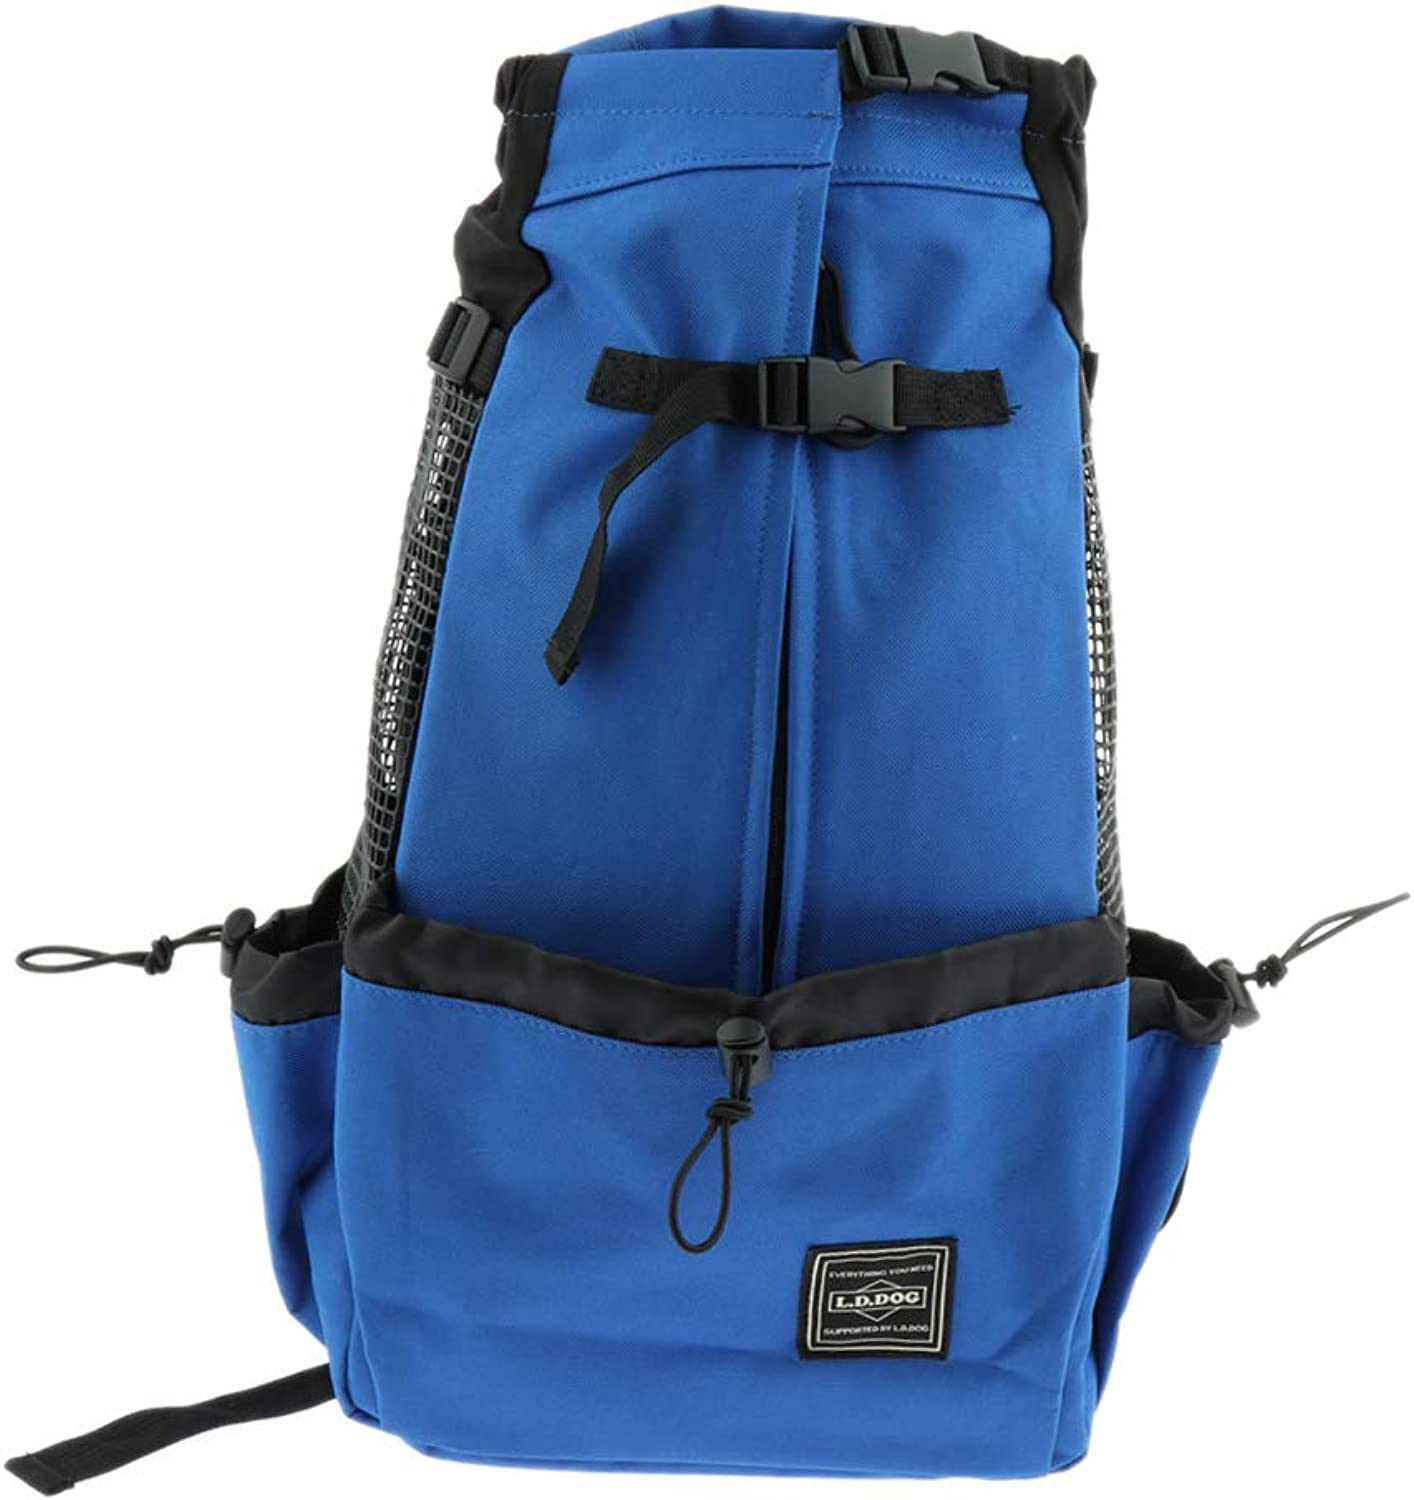 Baosity Pet Carrier Backpack for Small Cats Dogs Outdoor Travel Carrier for Walk, Hiking, Cycling  bluee M